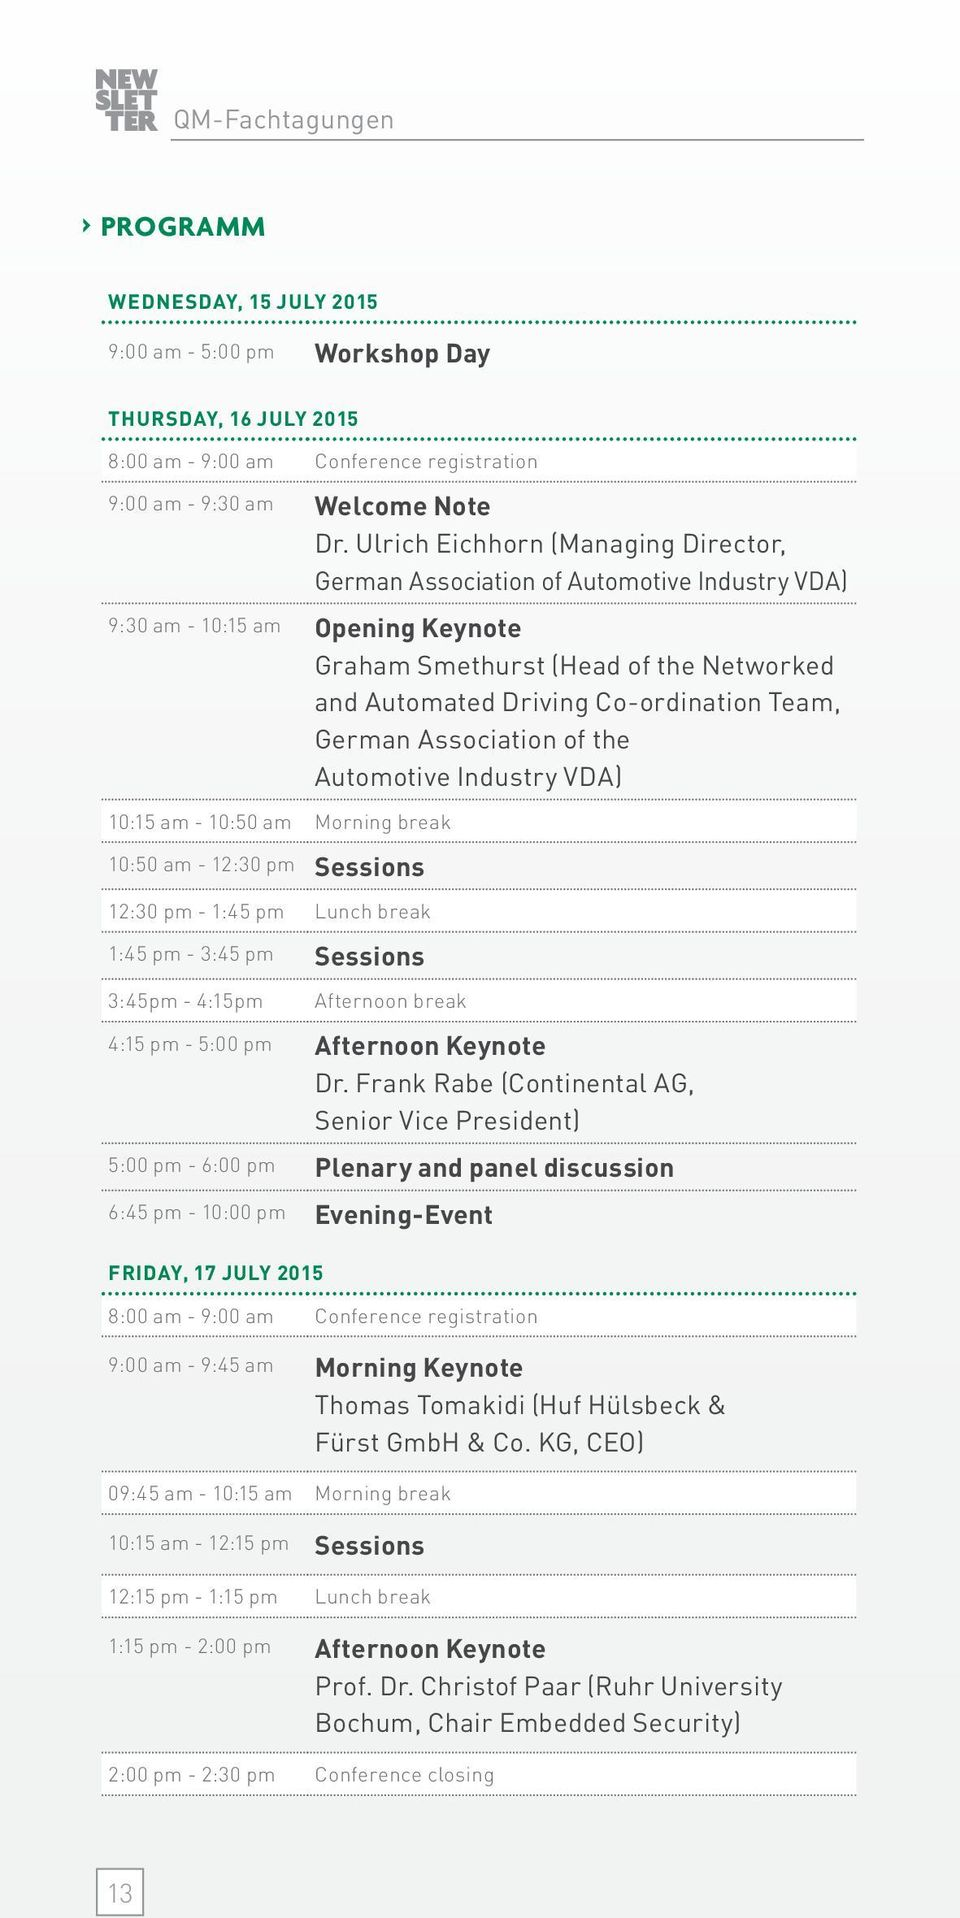 German Association of the Automotive Industry VDA) 10:15 am - 10:50 am Morning break 10:50 am - 12:30 pm Sessions 12:30 pm - 1:45 pm Lunch break 1:45 pm - 3:45 pm Sessions 3:45pm - 4:15pm Afternoon